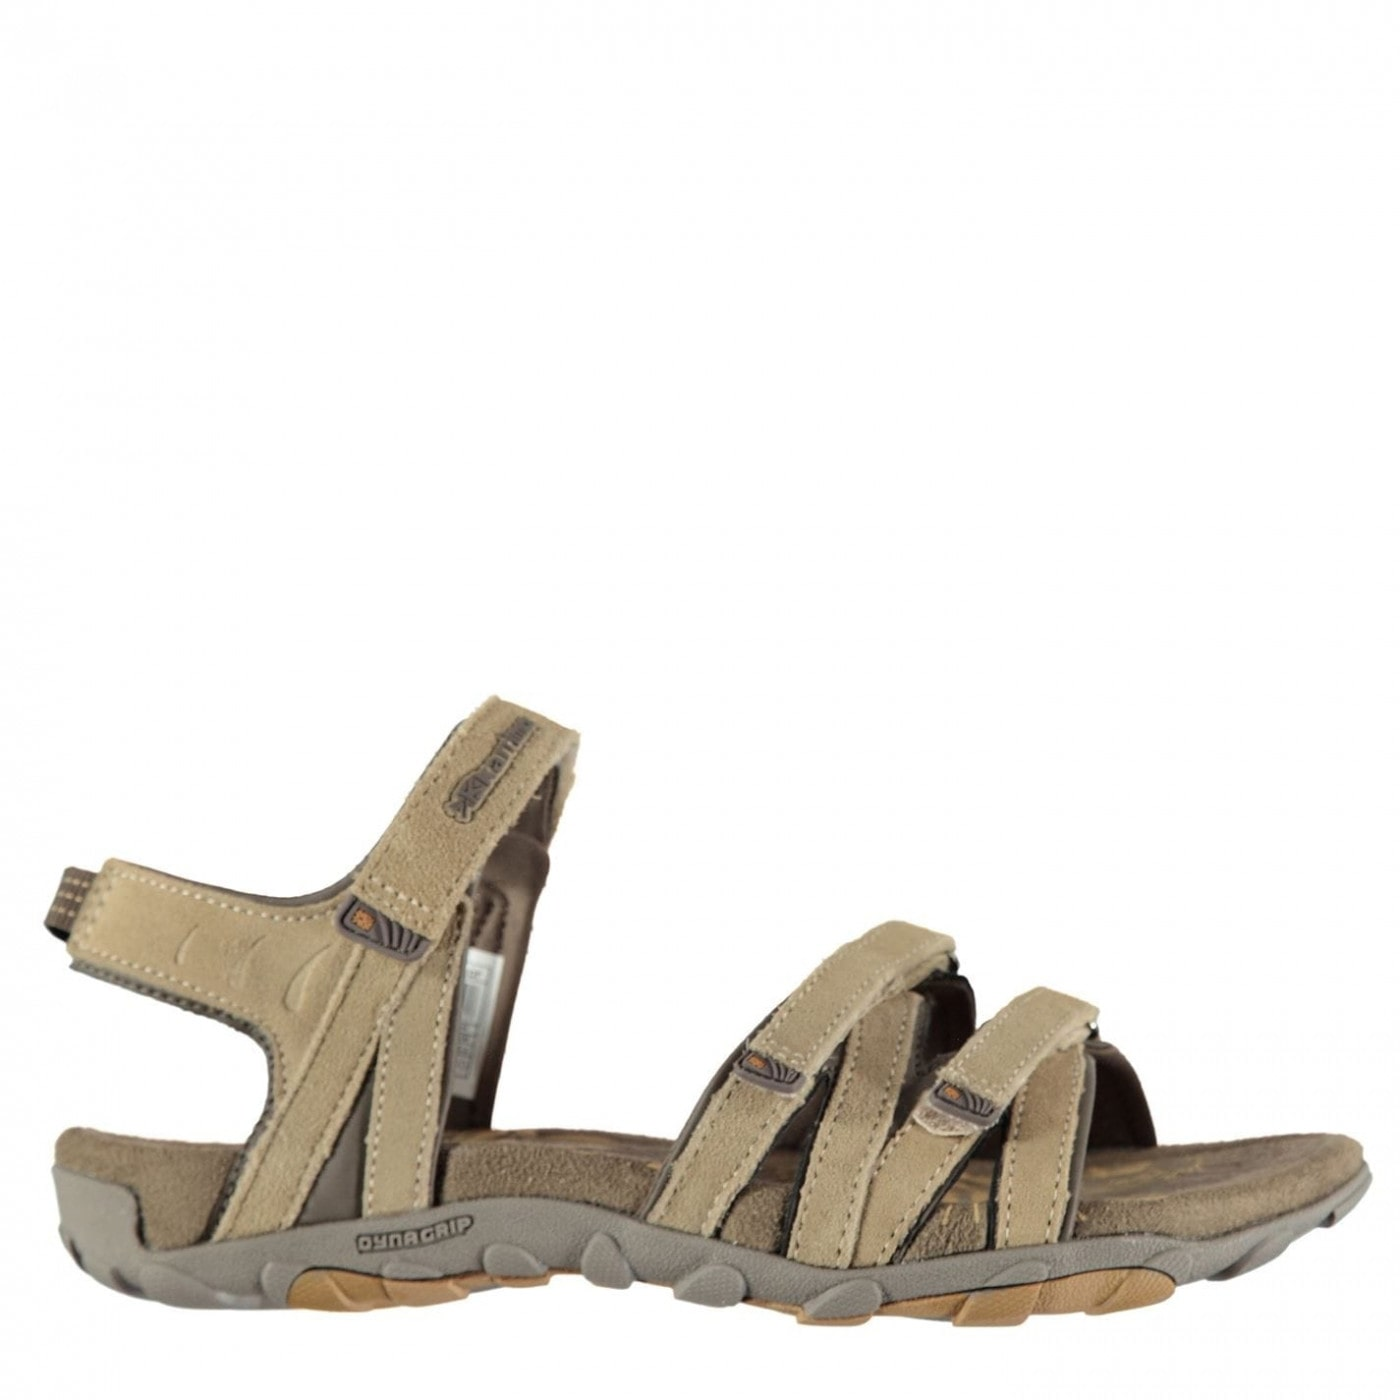 Karrimor Tuvalu Leather Womens Walking Sandals